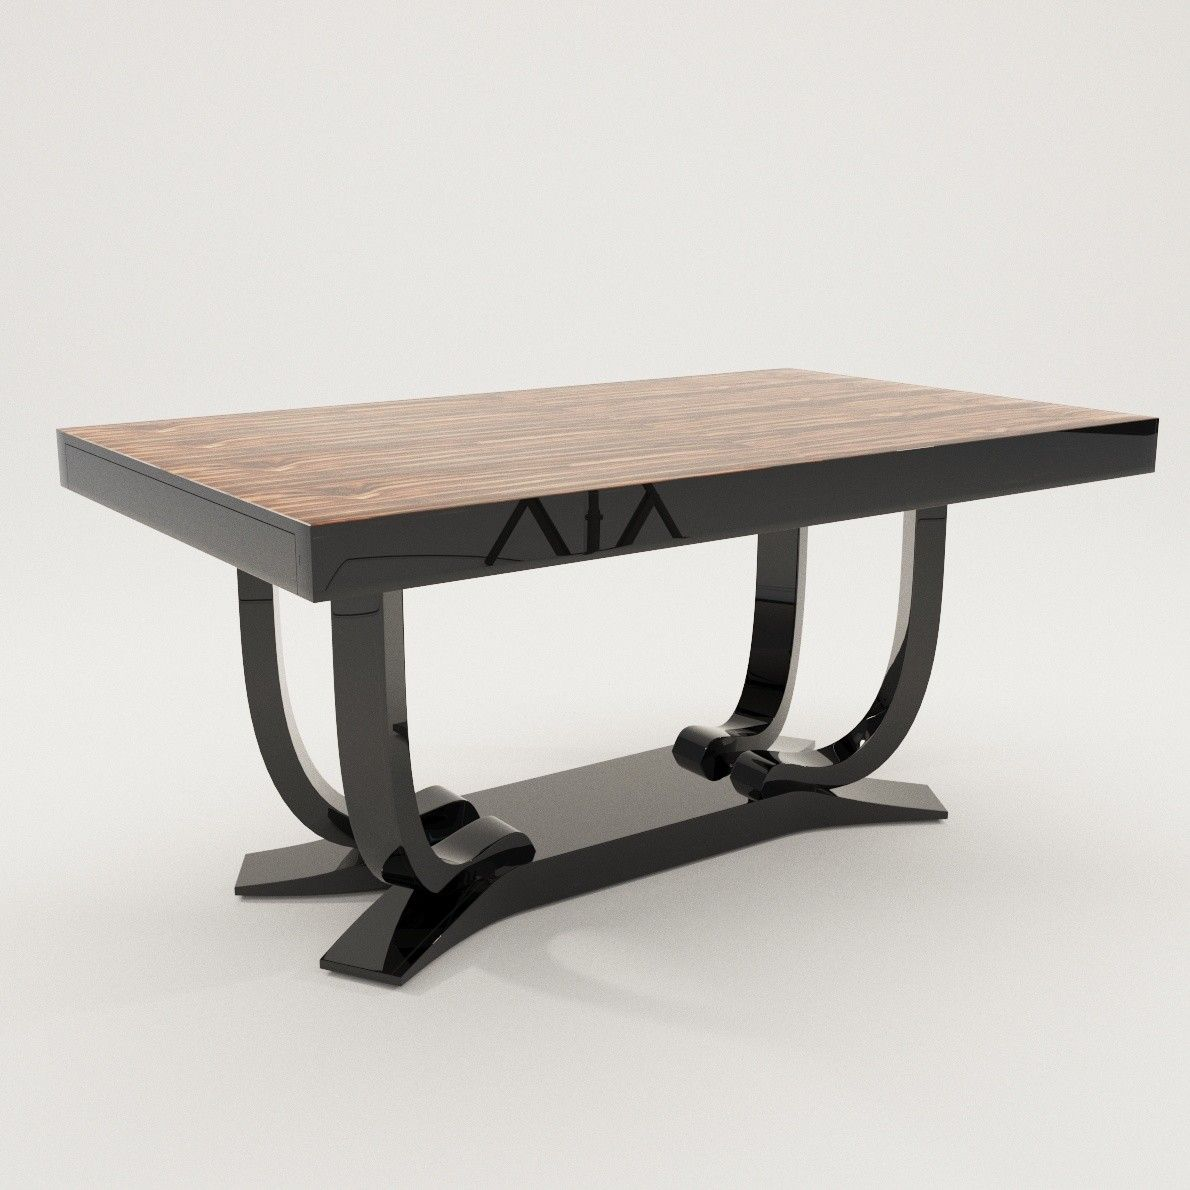 Art Deco Dining Table Dining Table Luxury Dining Tables